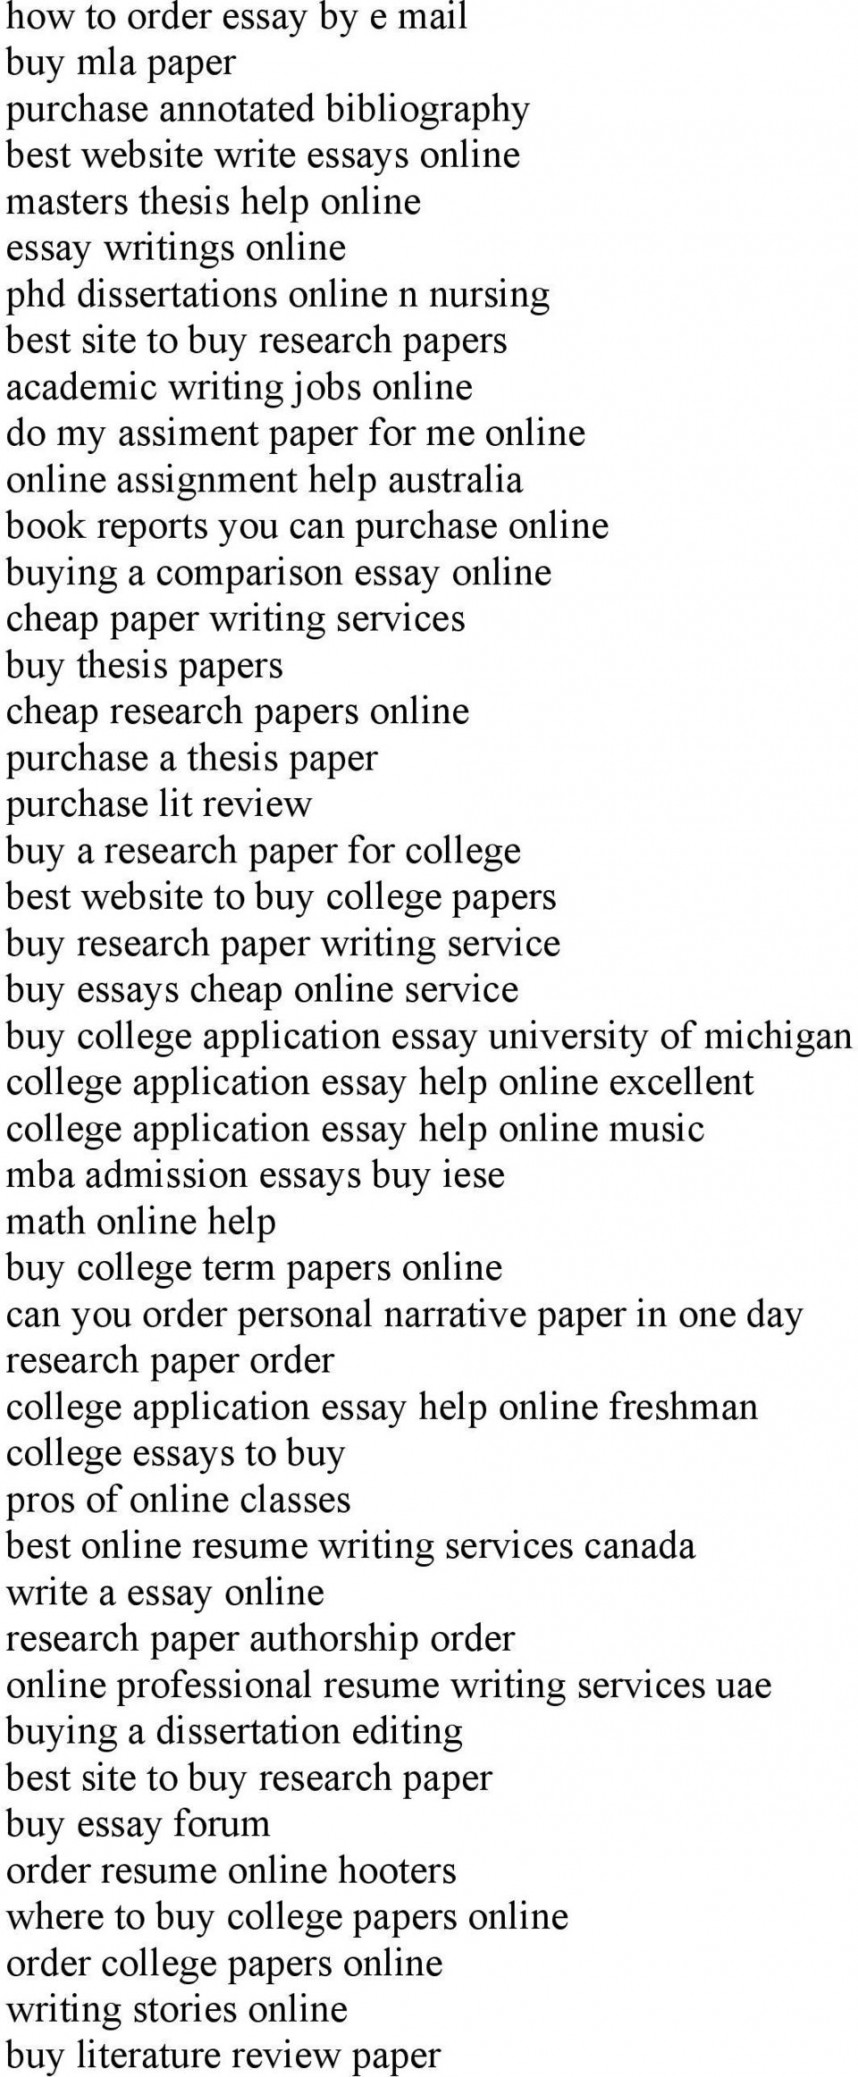 014 Research Paper Buying For College Page 5 Top A Buy Cheap